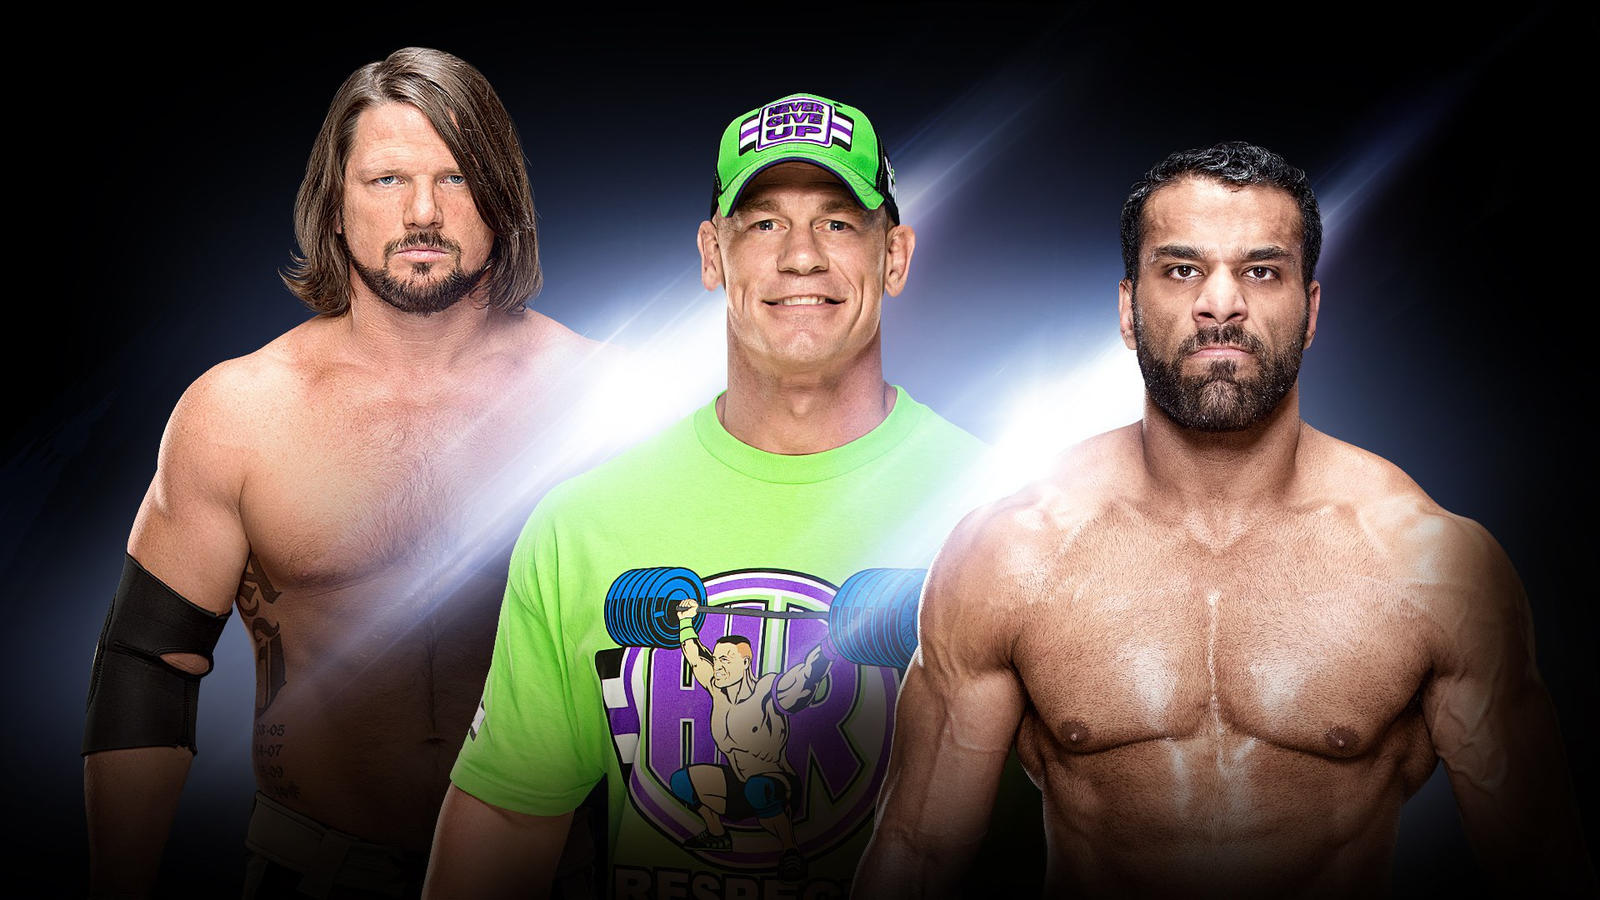 John Cena Added To WWE Championship Match At Fastlane